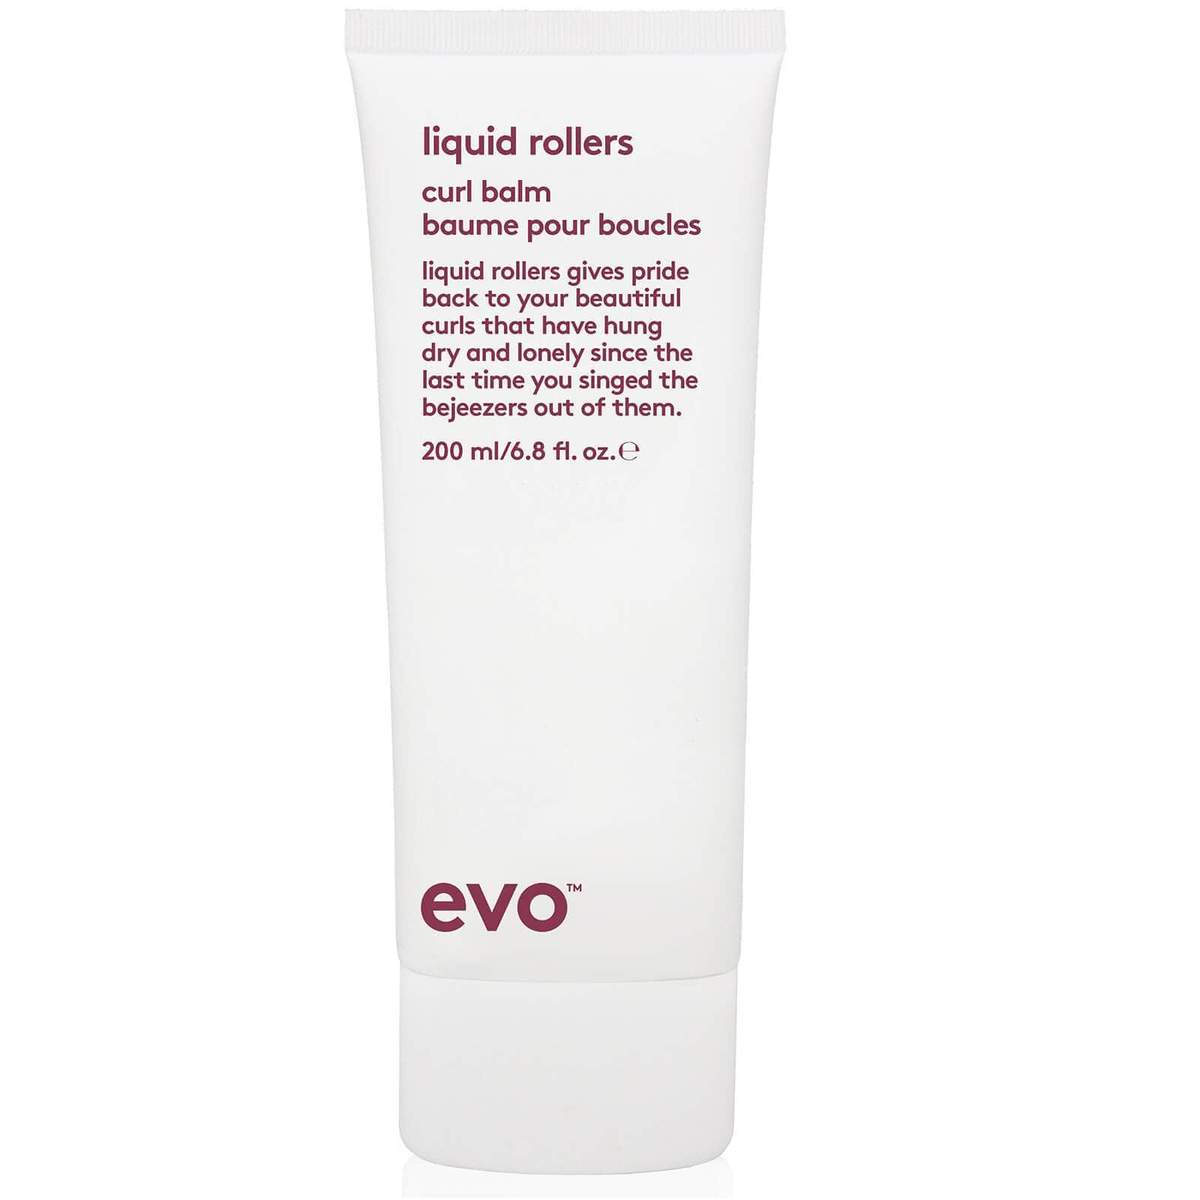 Fiive Beauty Top 5 Hair Styling Products Hair by EVO Liquid Rollers Curl Balm